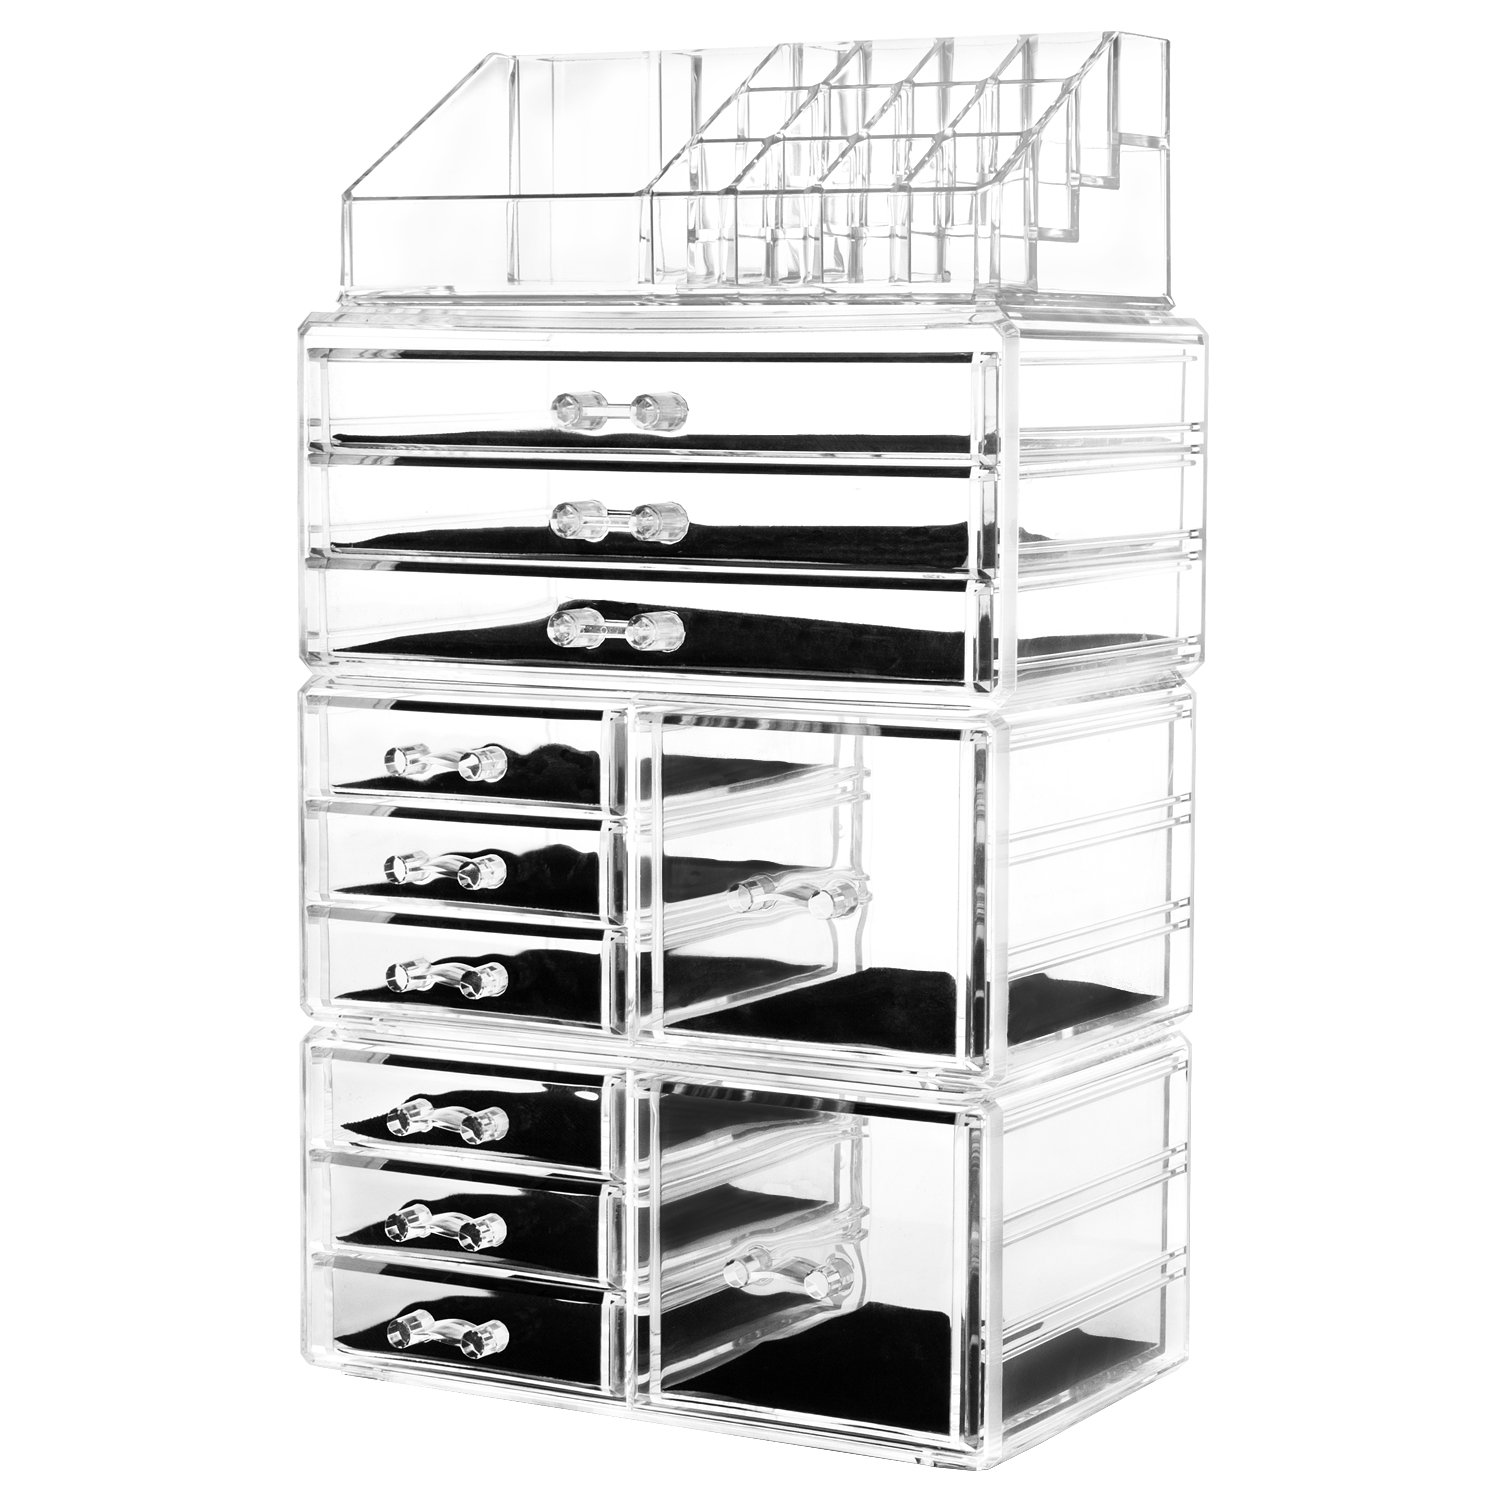 HBlife Acrylic Jewelry and Cosmetic Storage Drawers Display Makeup Organizer Boxes Case with 11 Drawers, 9.5'' x 5.4'' x 15.8'', 4 Piece by HBlife